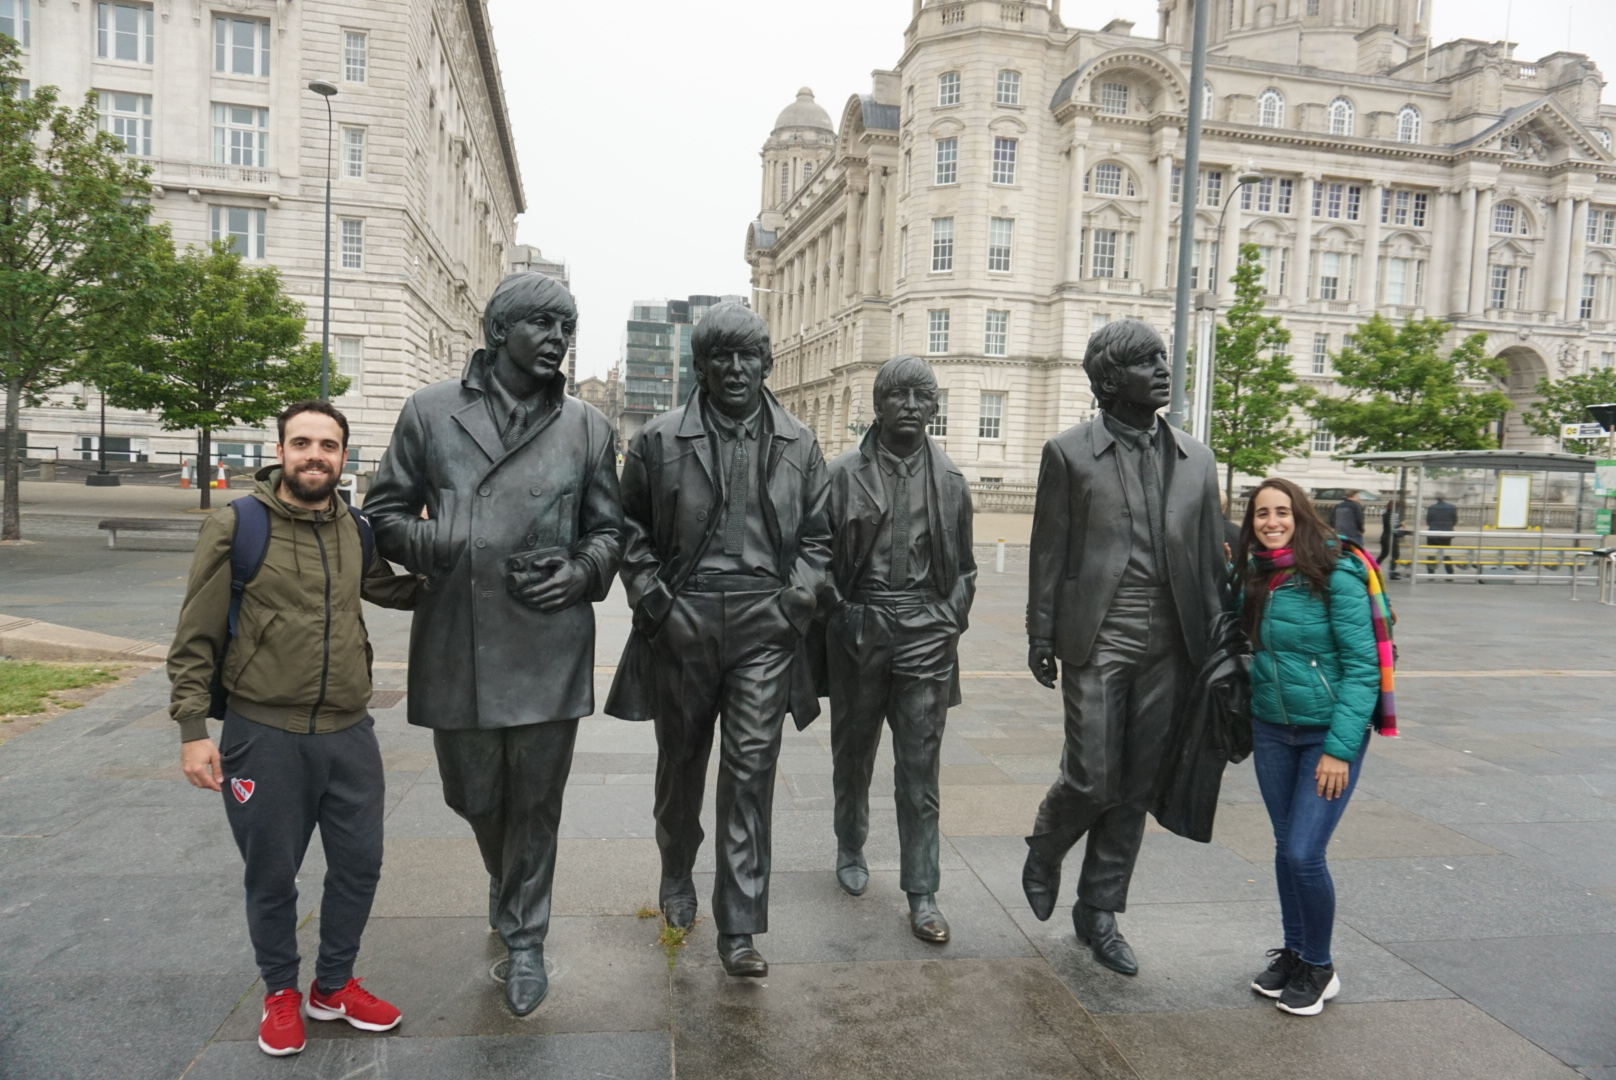 La estatua de los Beatles, que ver en Liverpool